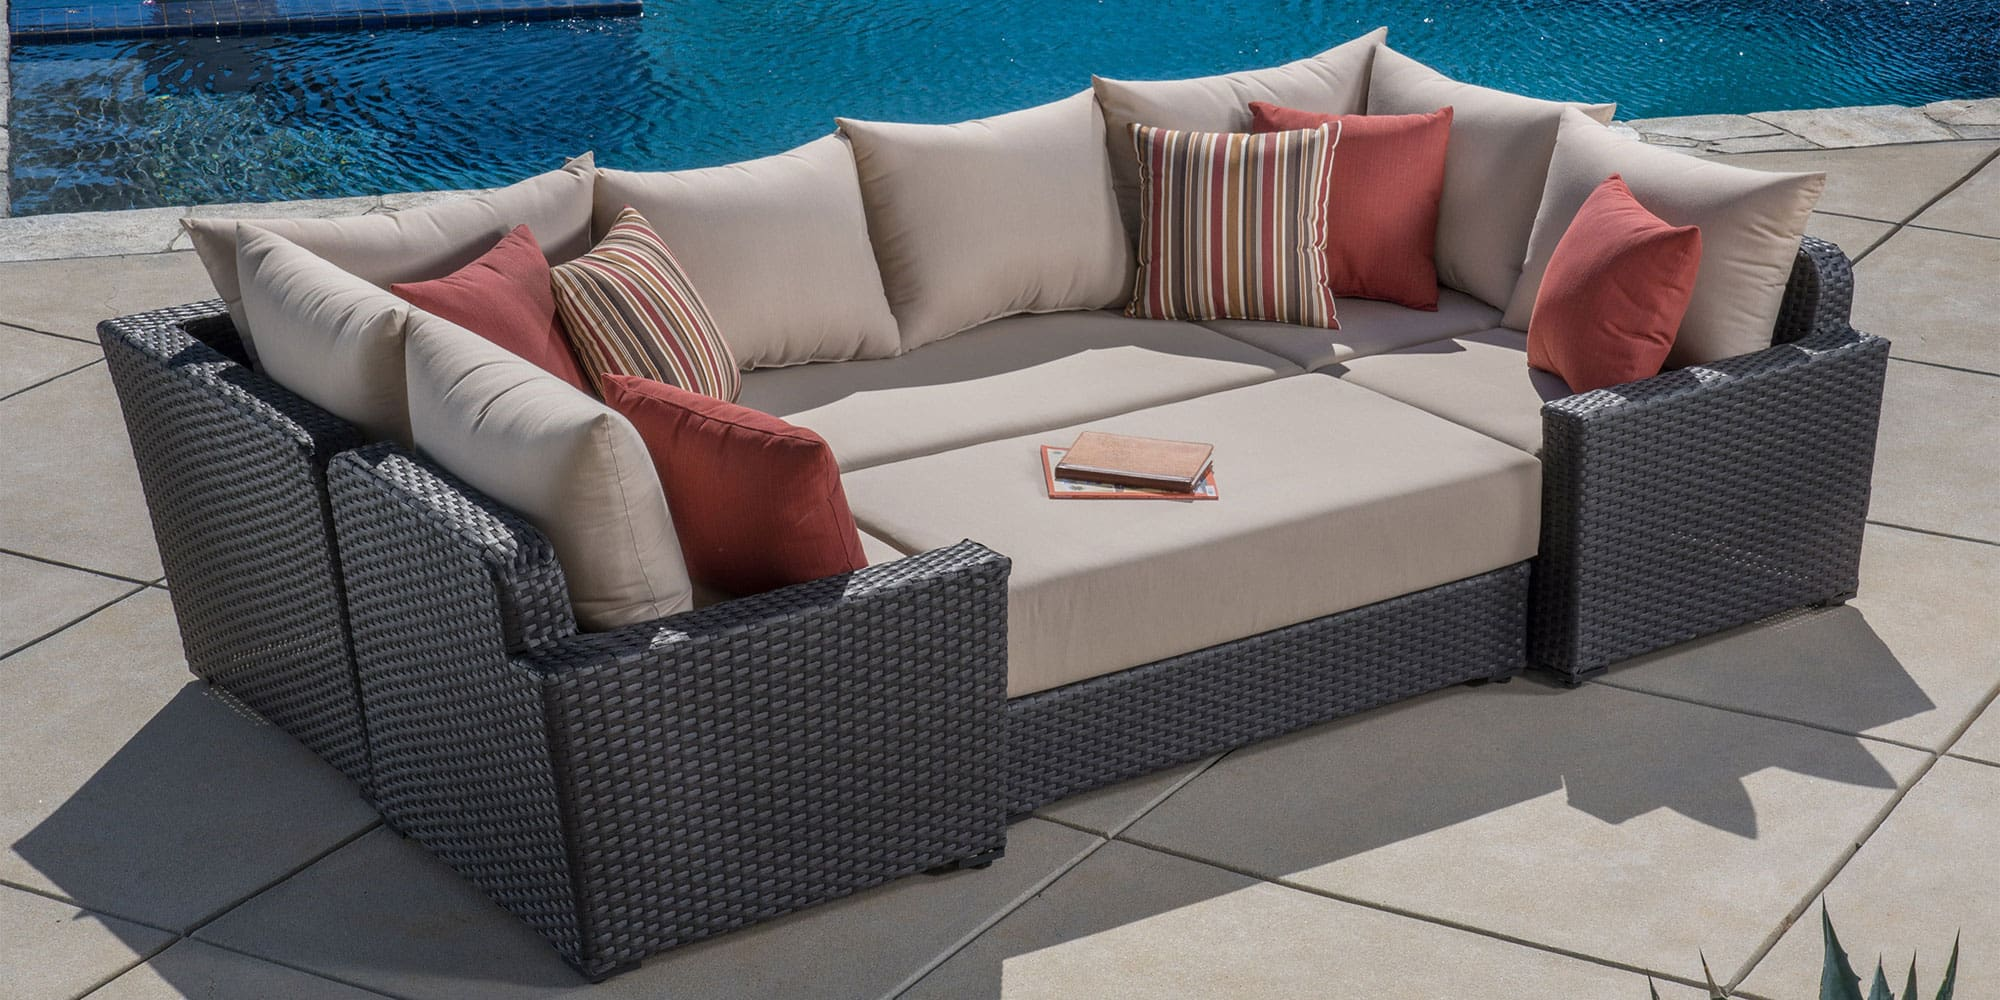 Outdoor Patio Furniture Collections Costco - Garden Furniture Clearance Warehouse